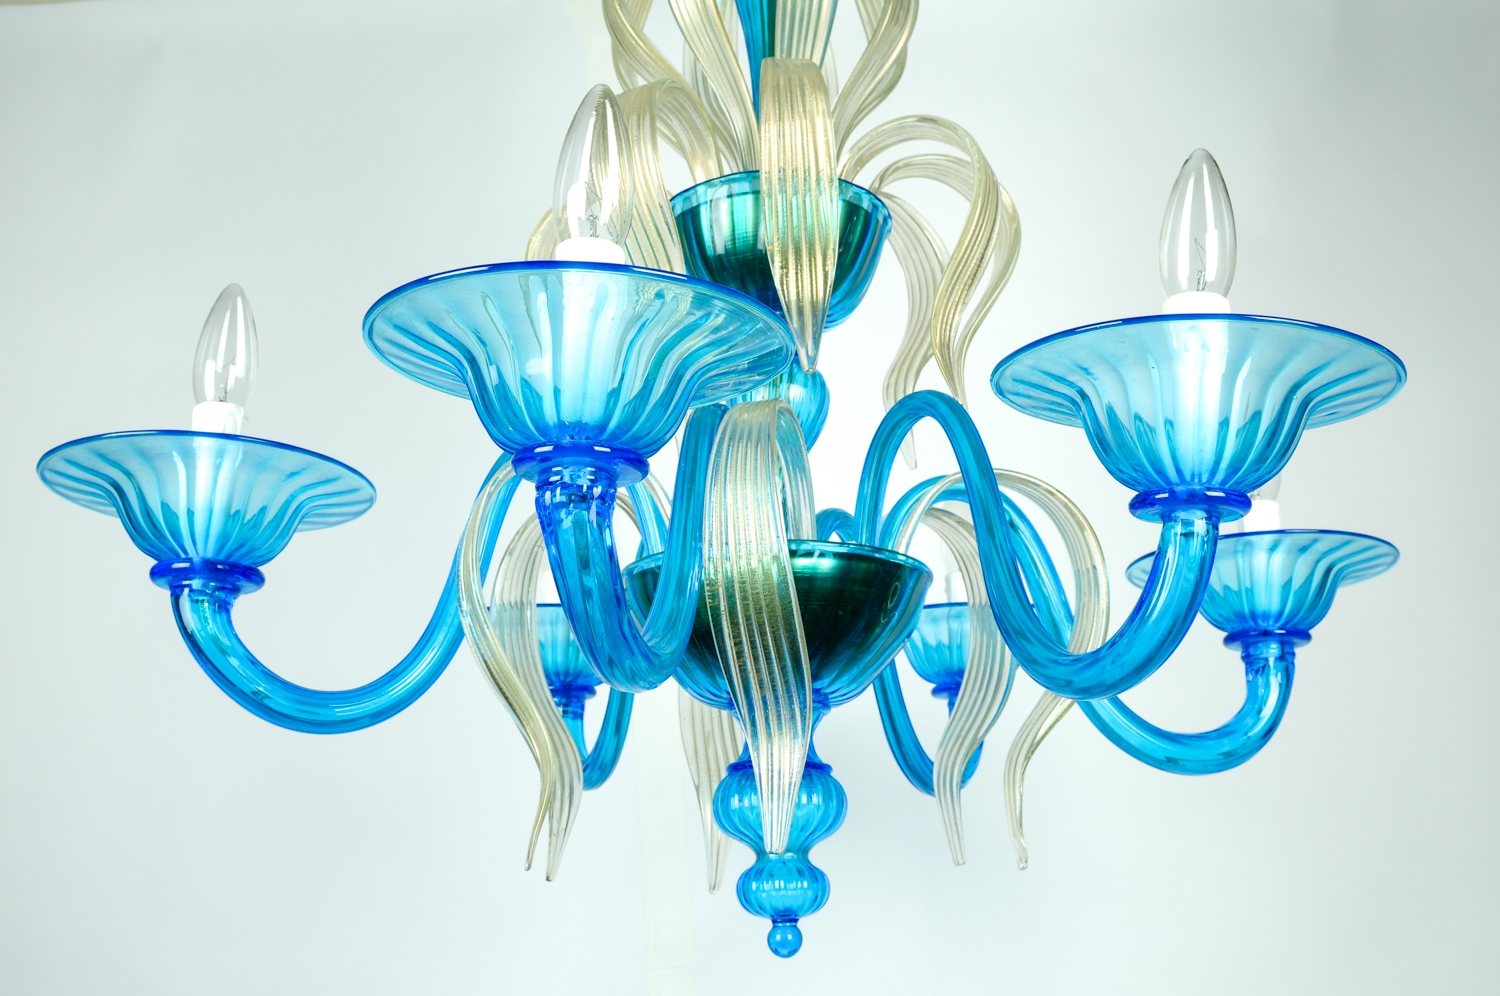 Venetian Handblown Six Arms Turquoise With Gold Flecks Chandelier Intended For Turquoise And Gold Chandeliers (Image 11 of 13)